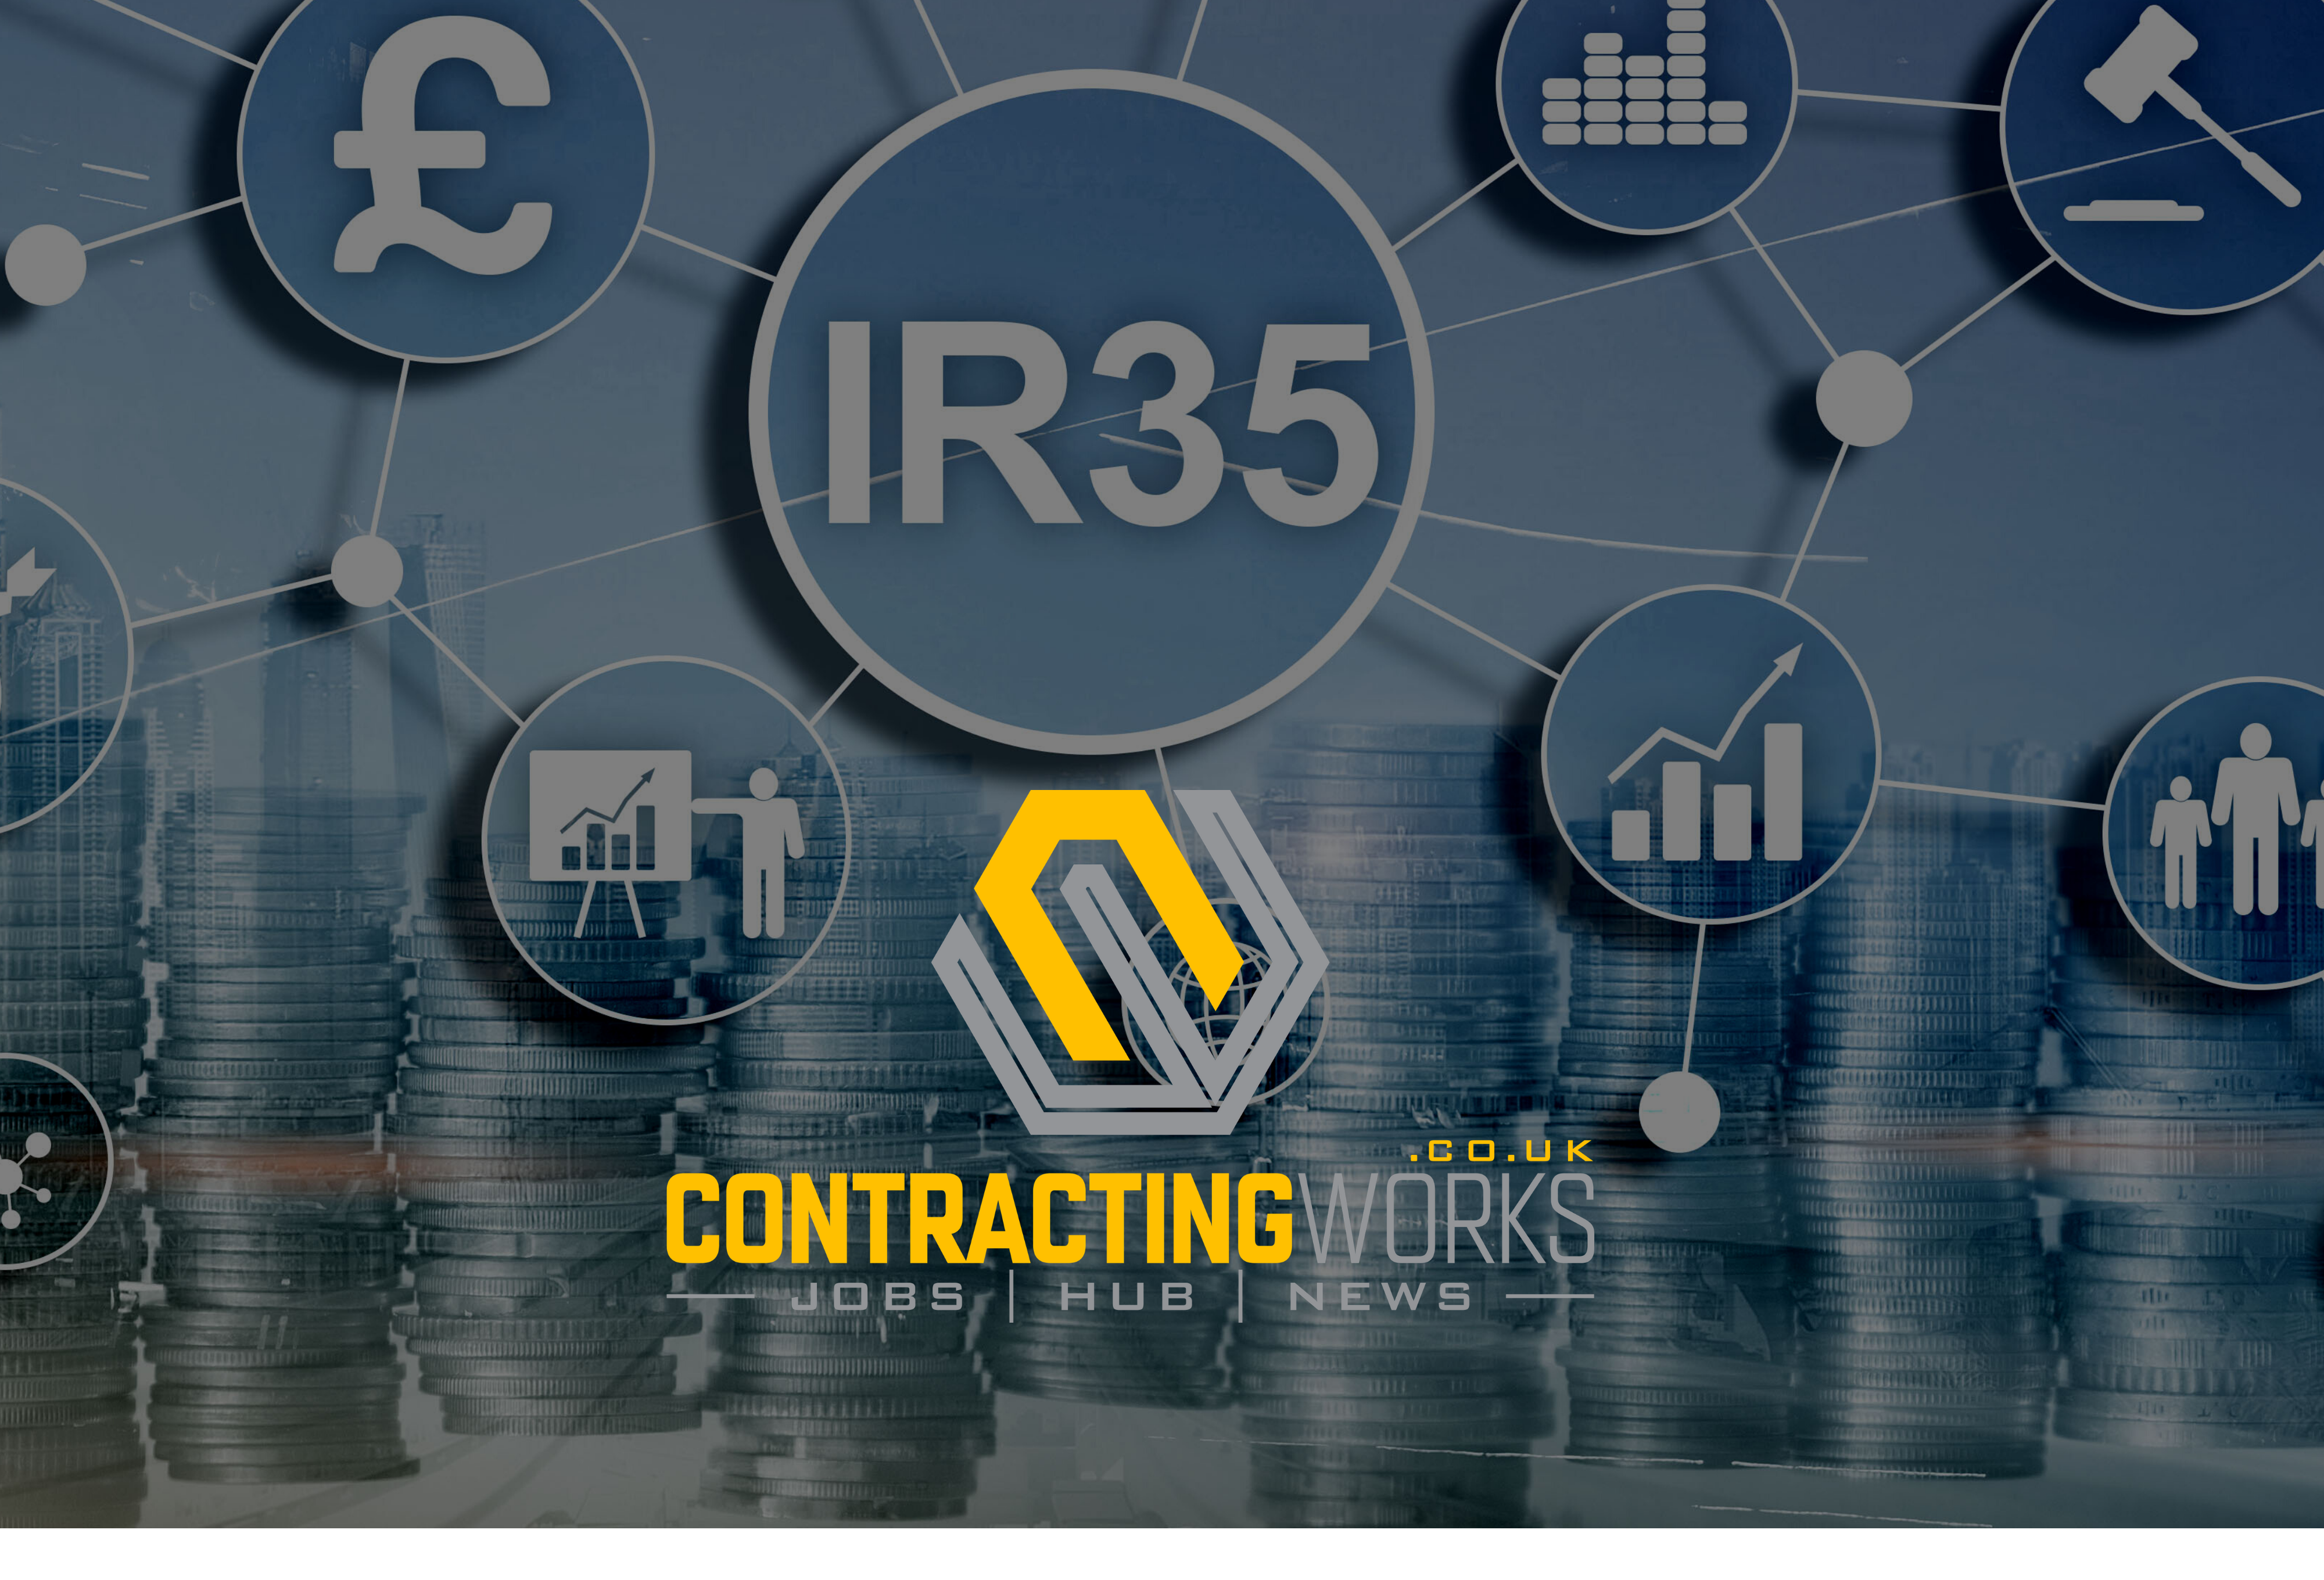 WHAT CAN CONTRACTORS EXPECT WITH THE IR35 REFORMS?